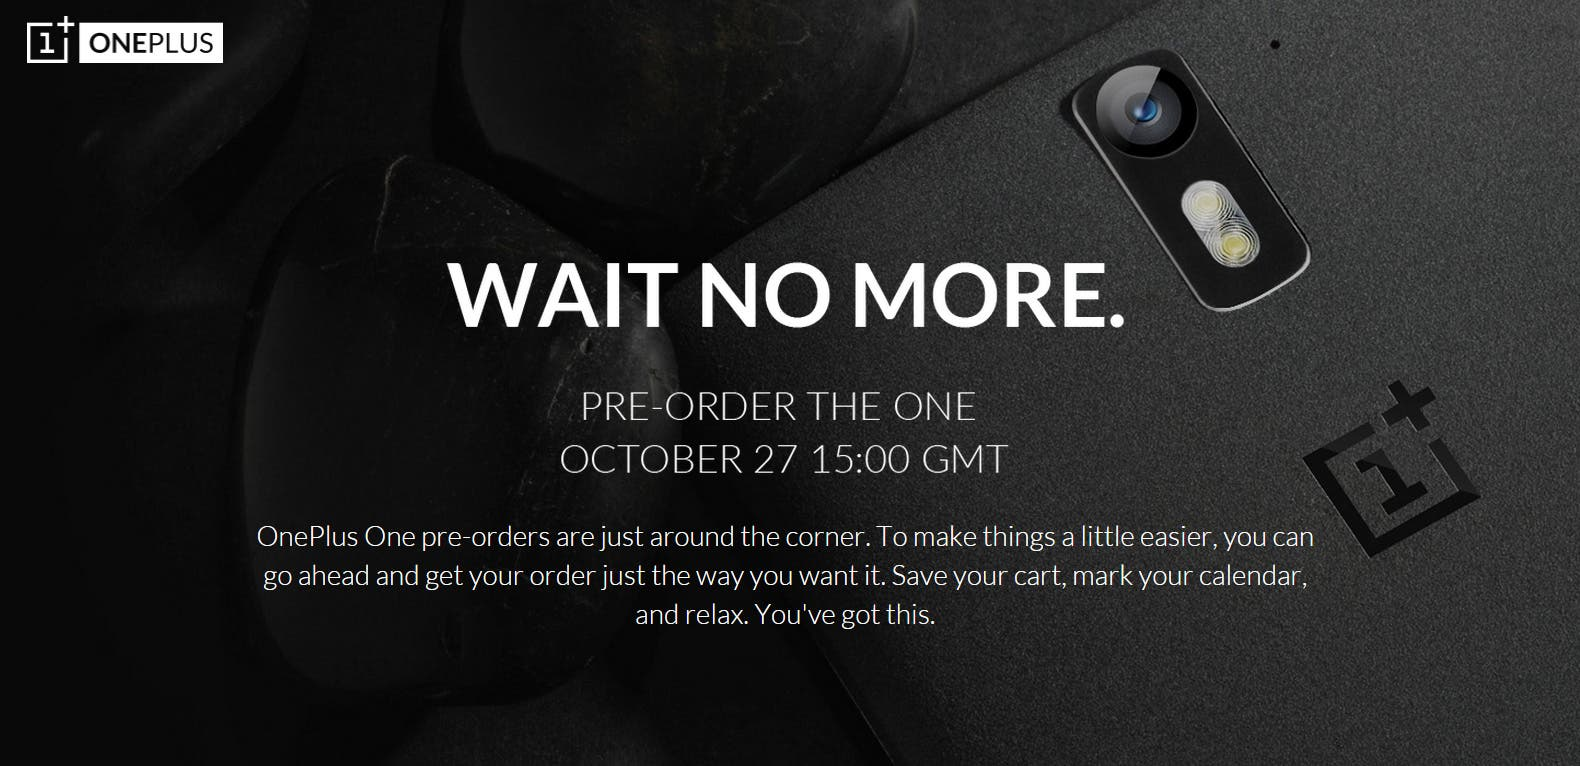 oneplus-preorder